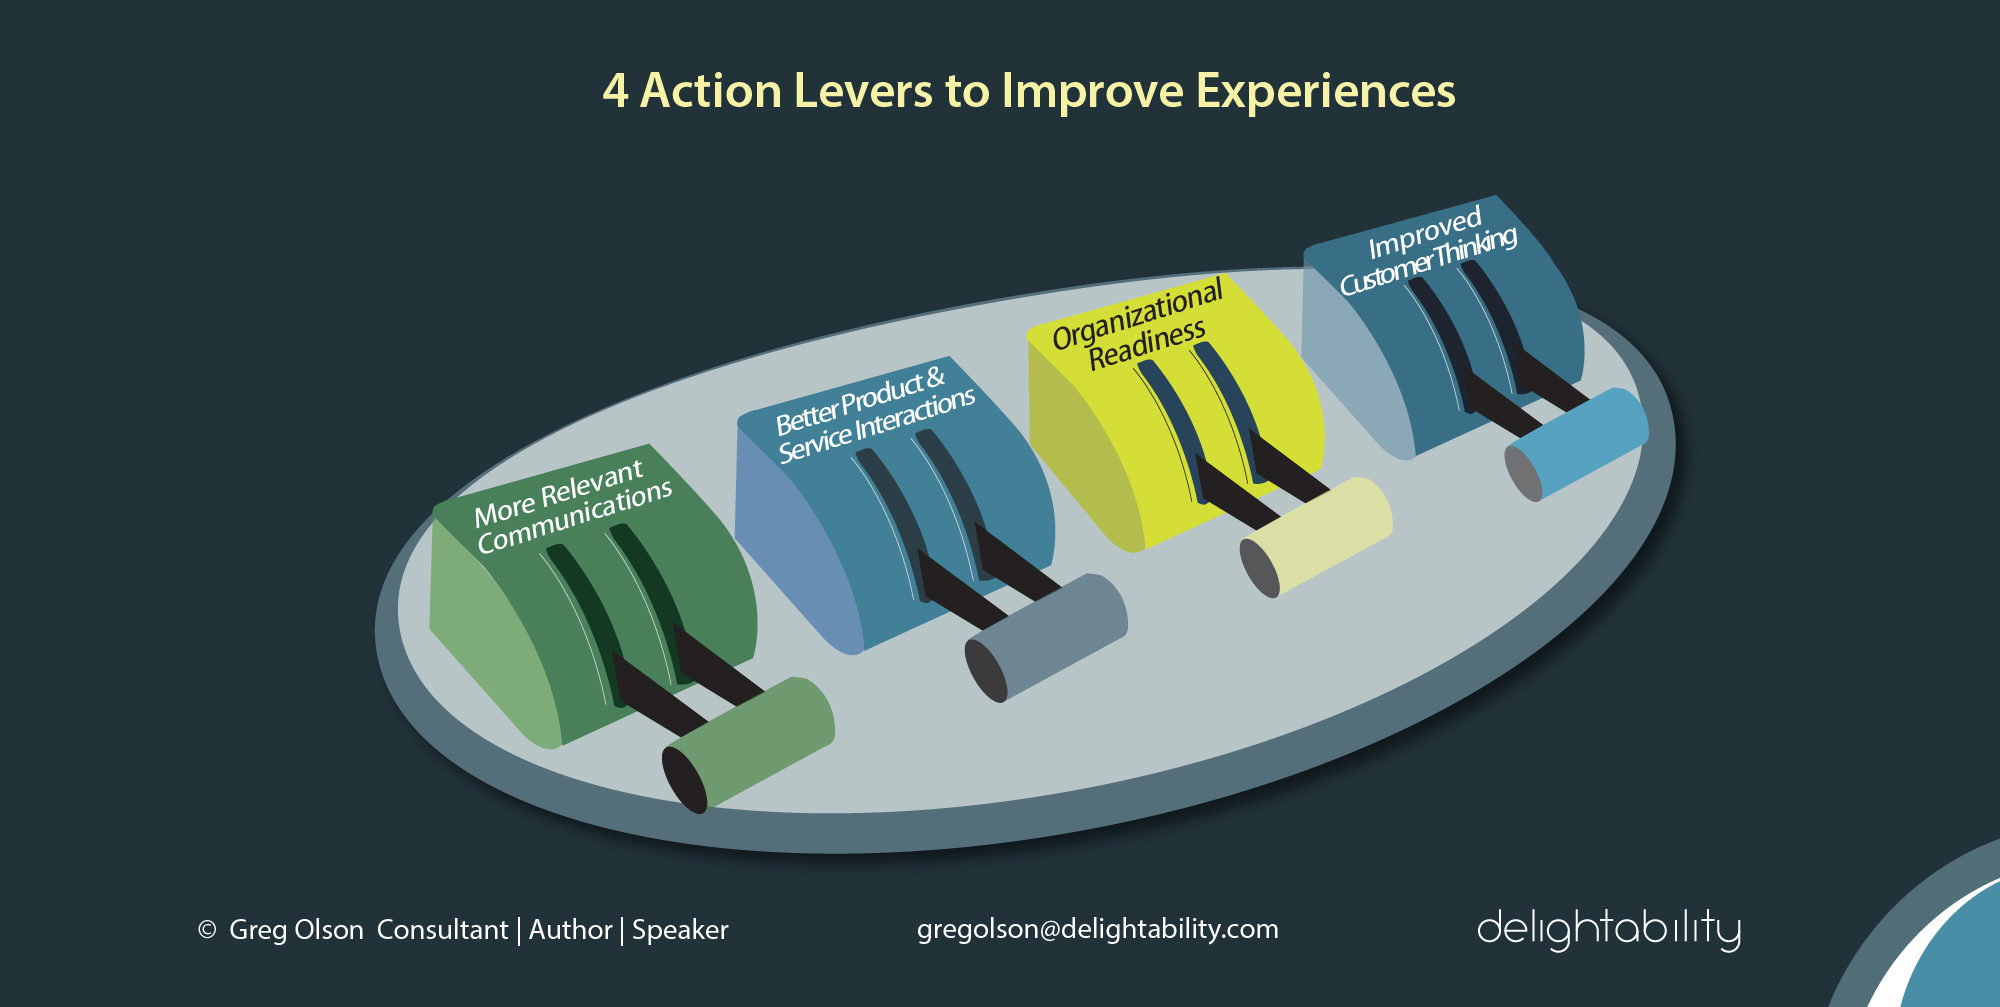 image of 4 Action Levers from Gregory Olsons book The Experience Design Blueprint